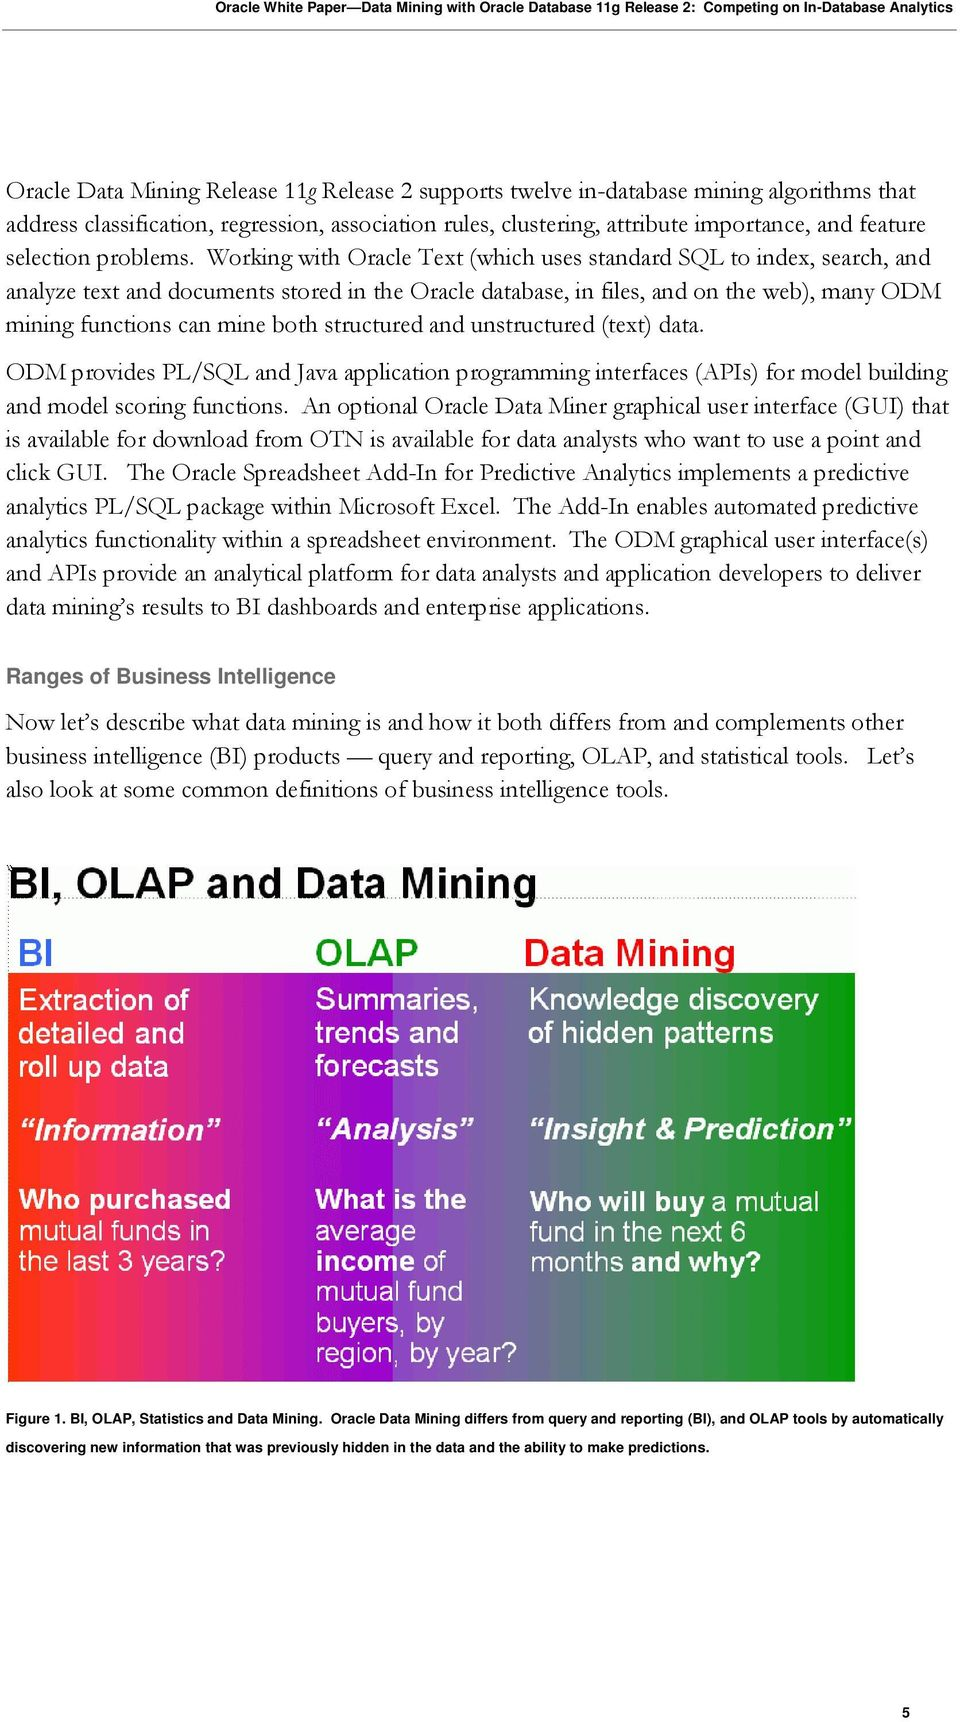 Working with Oracle Text (which uses standard SQL to index, search, and analyze text and documents stored in the Oracle database, in files, and on the web), many ODM mining functions can mine both